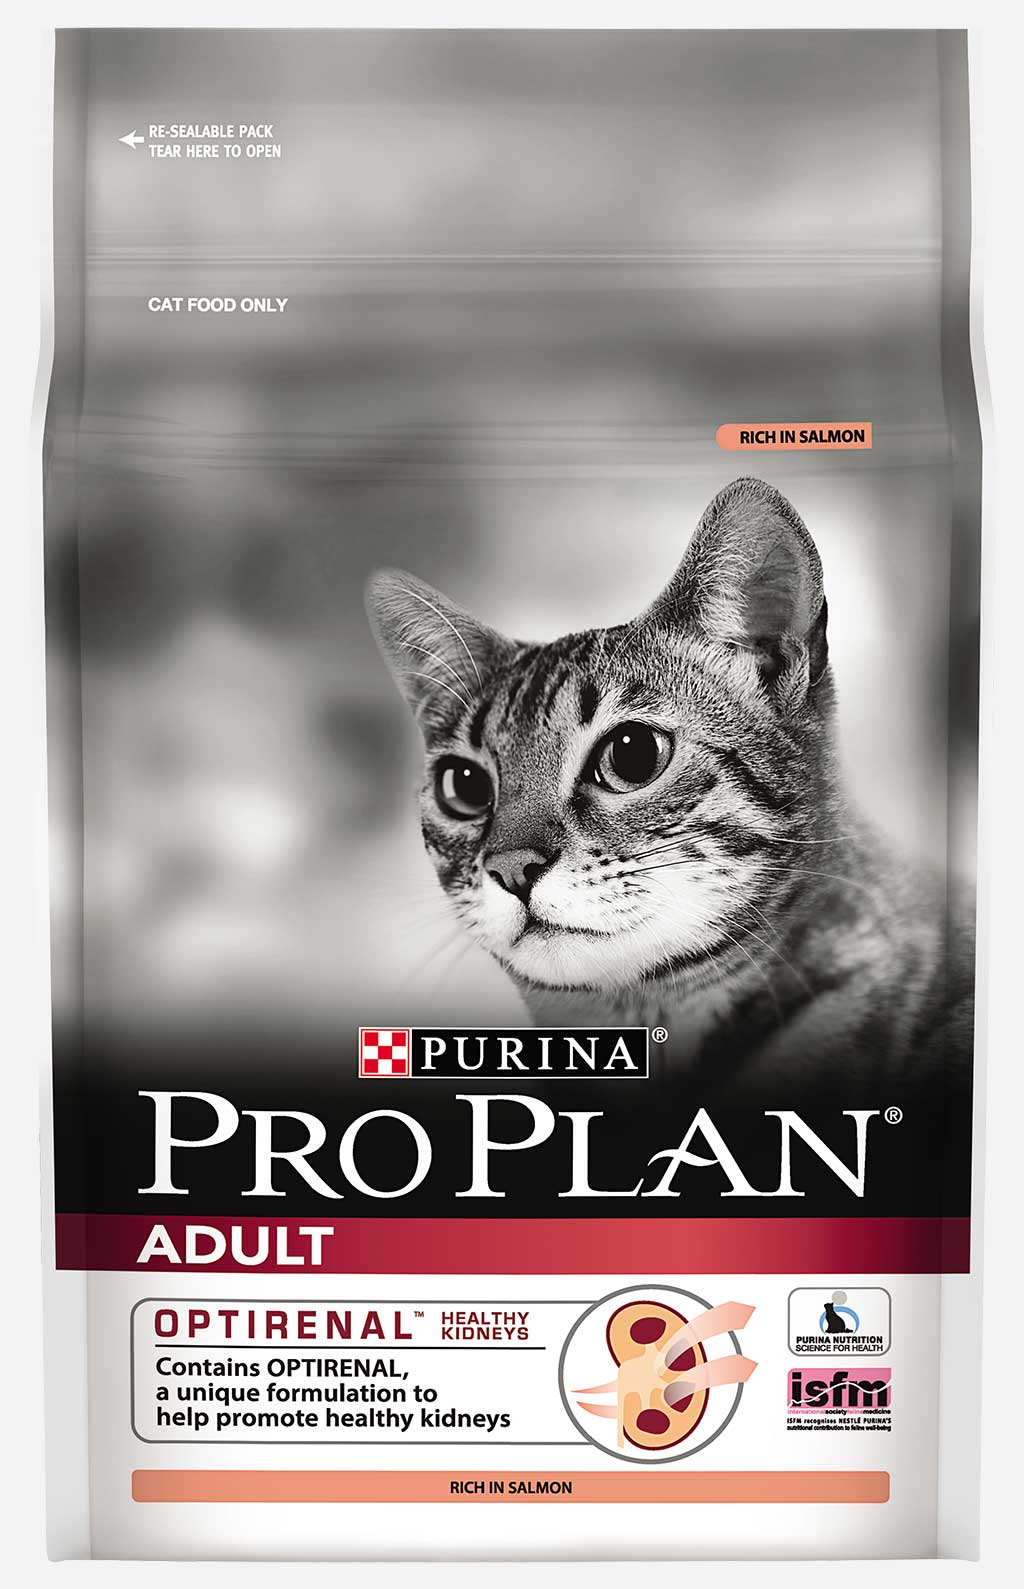 Purina Pro Plan Adult feline rich in Salmon dry